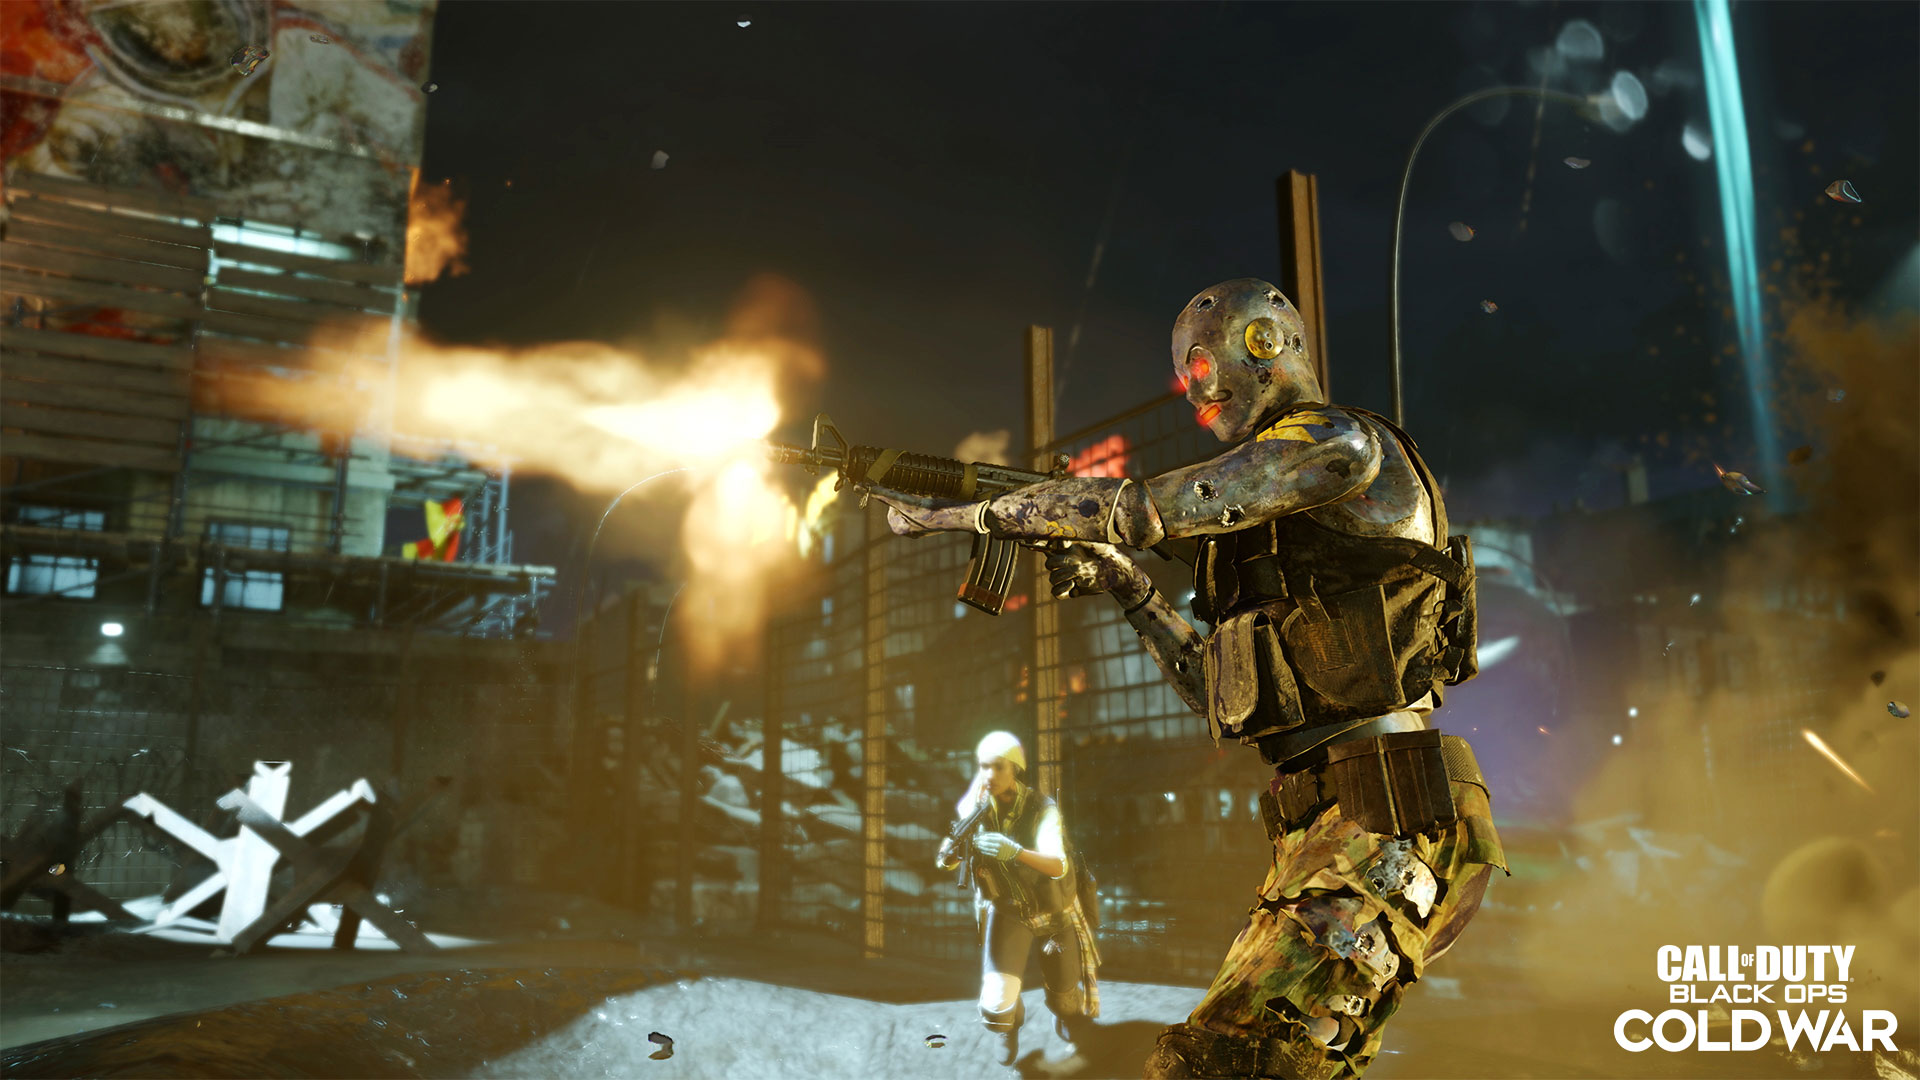 Robot dummy shooting at zombies